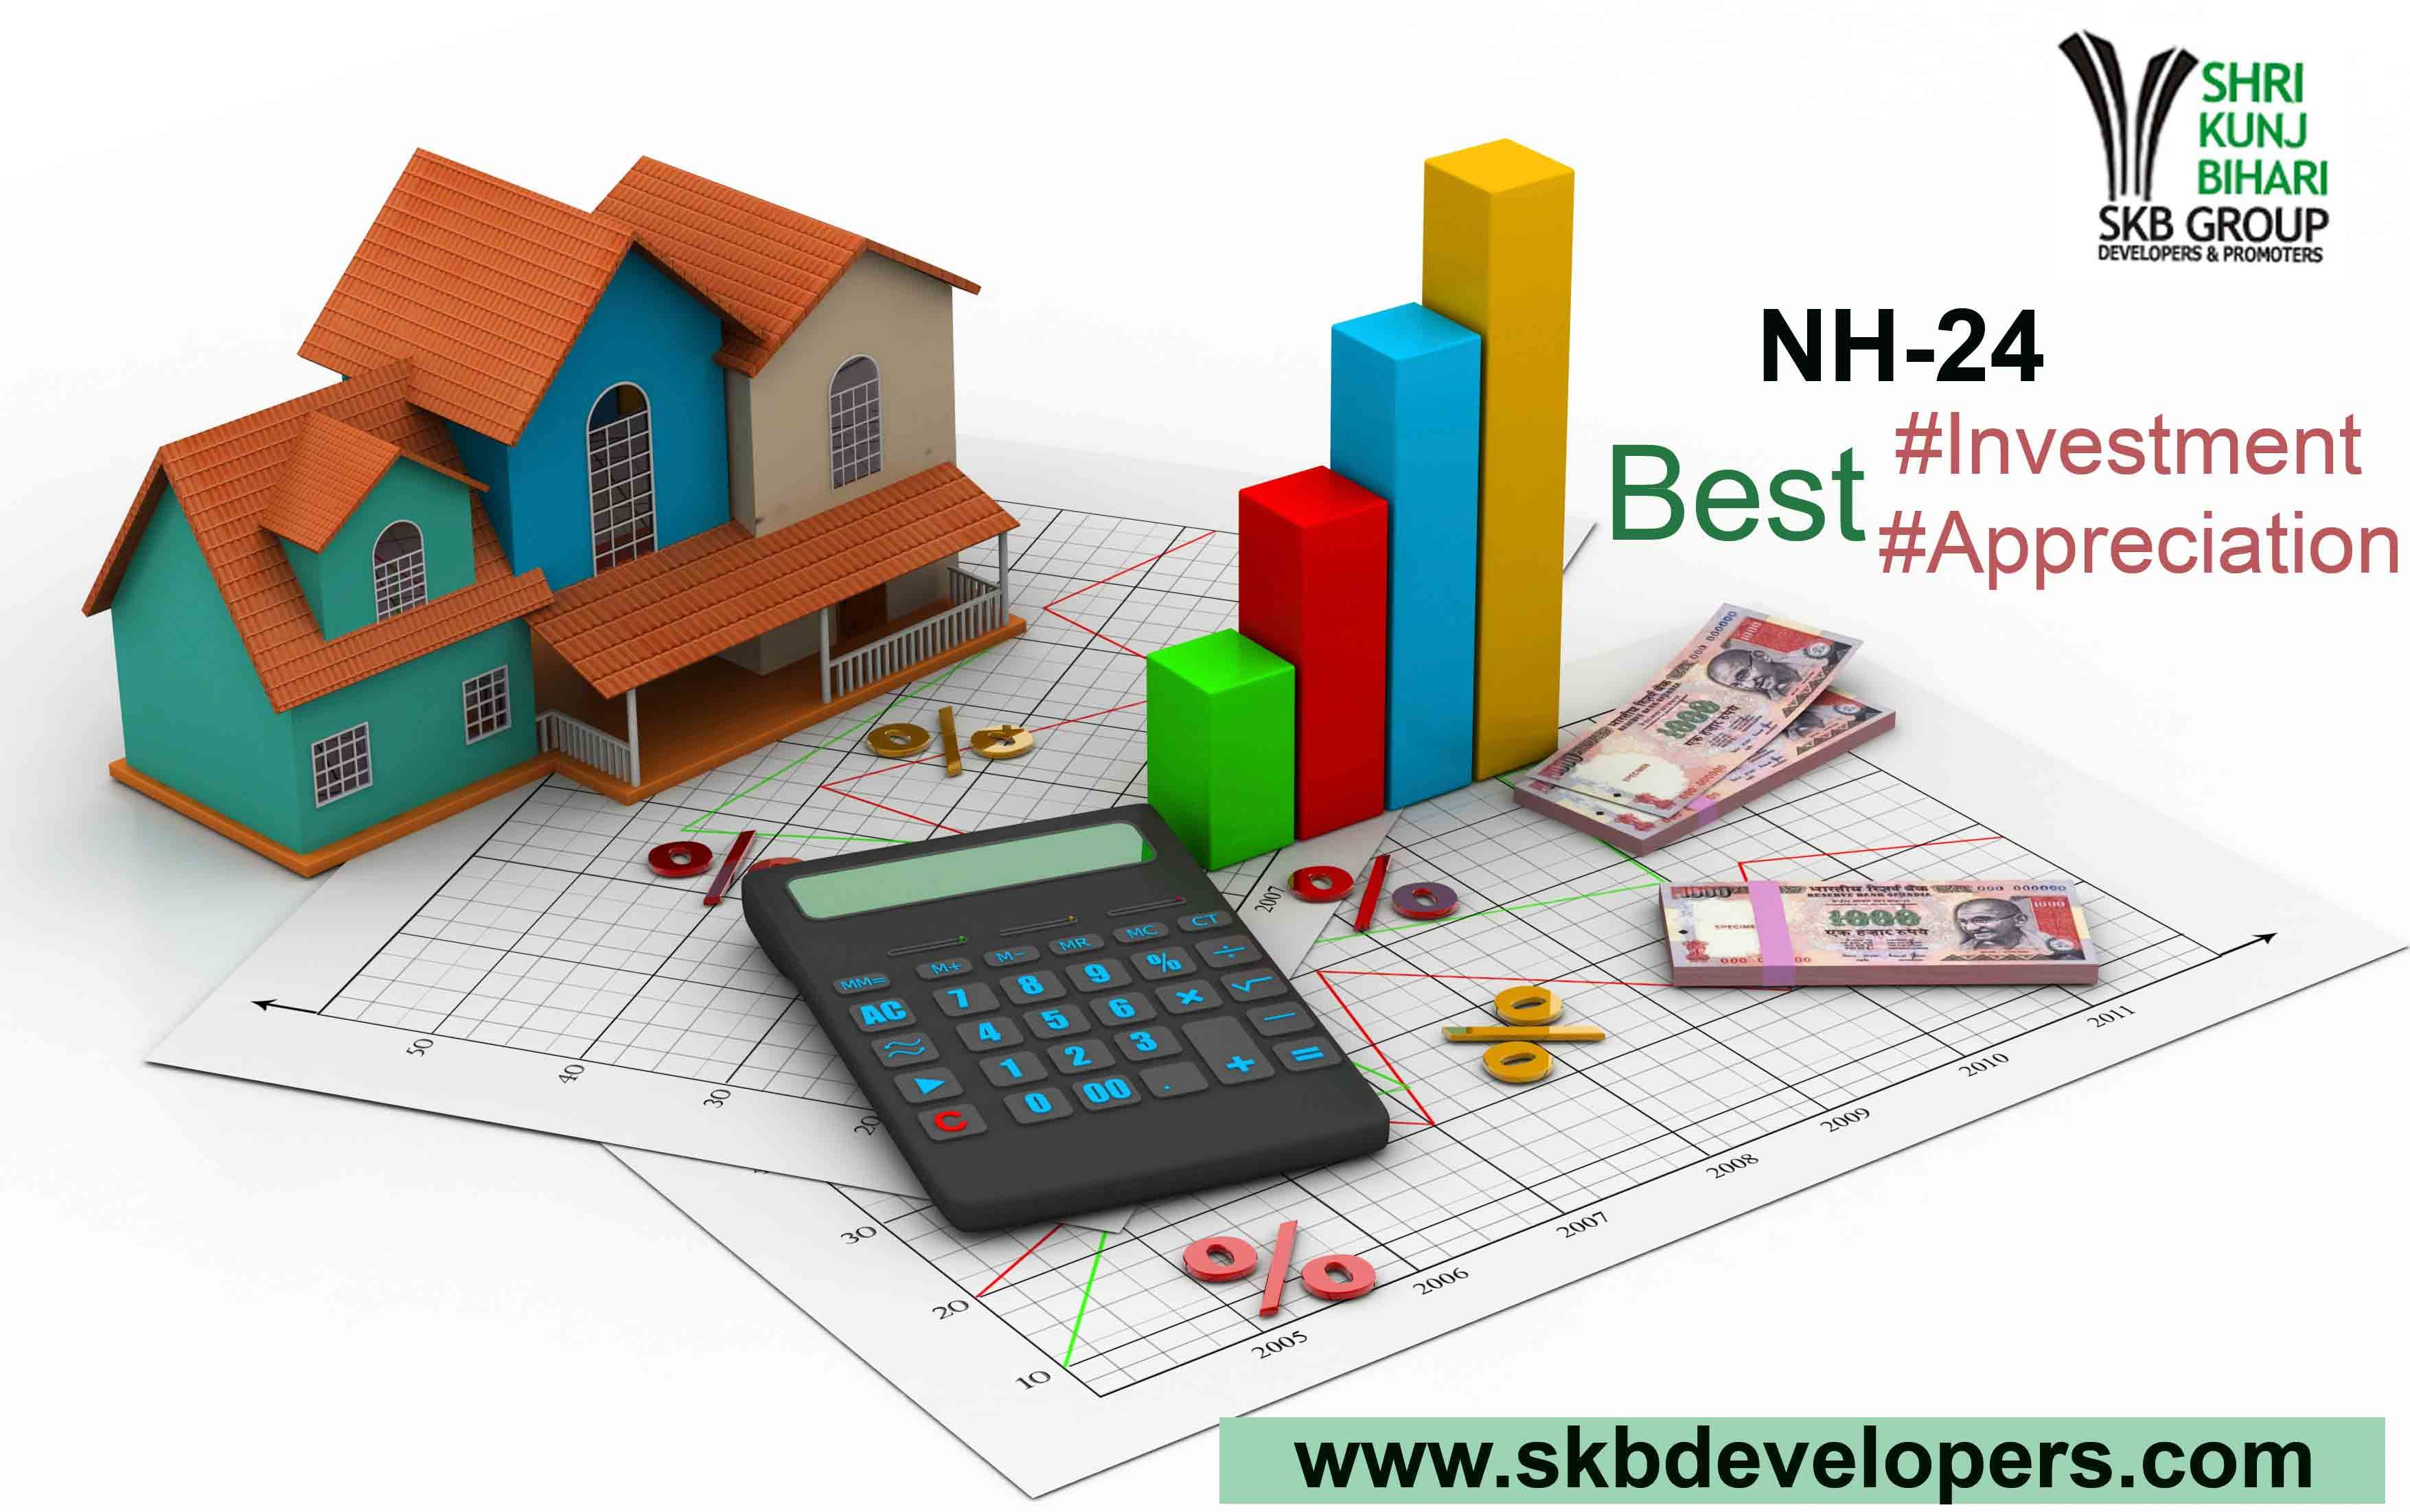 Best place for property investment in NH-24 Real estate INVESTMENT  involves the commitment of funds to property with an aim to generate income through rental or lease and to achieve capital appreciation. Real estate refers to immovable property, such as land, and everything else that is permanently attached to it, such as buildings. When a person acquires real estate, s/he also acquires a set of rights, including possession, control and transfer rights. Visit - http://www.skbdevelopers.com/